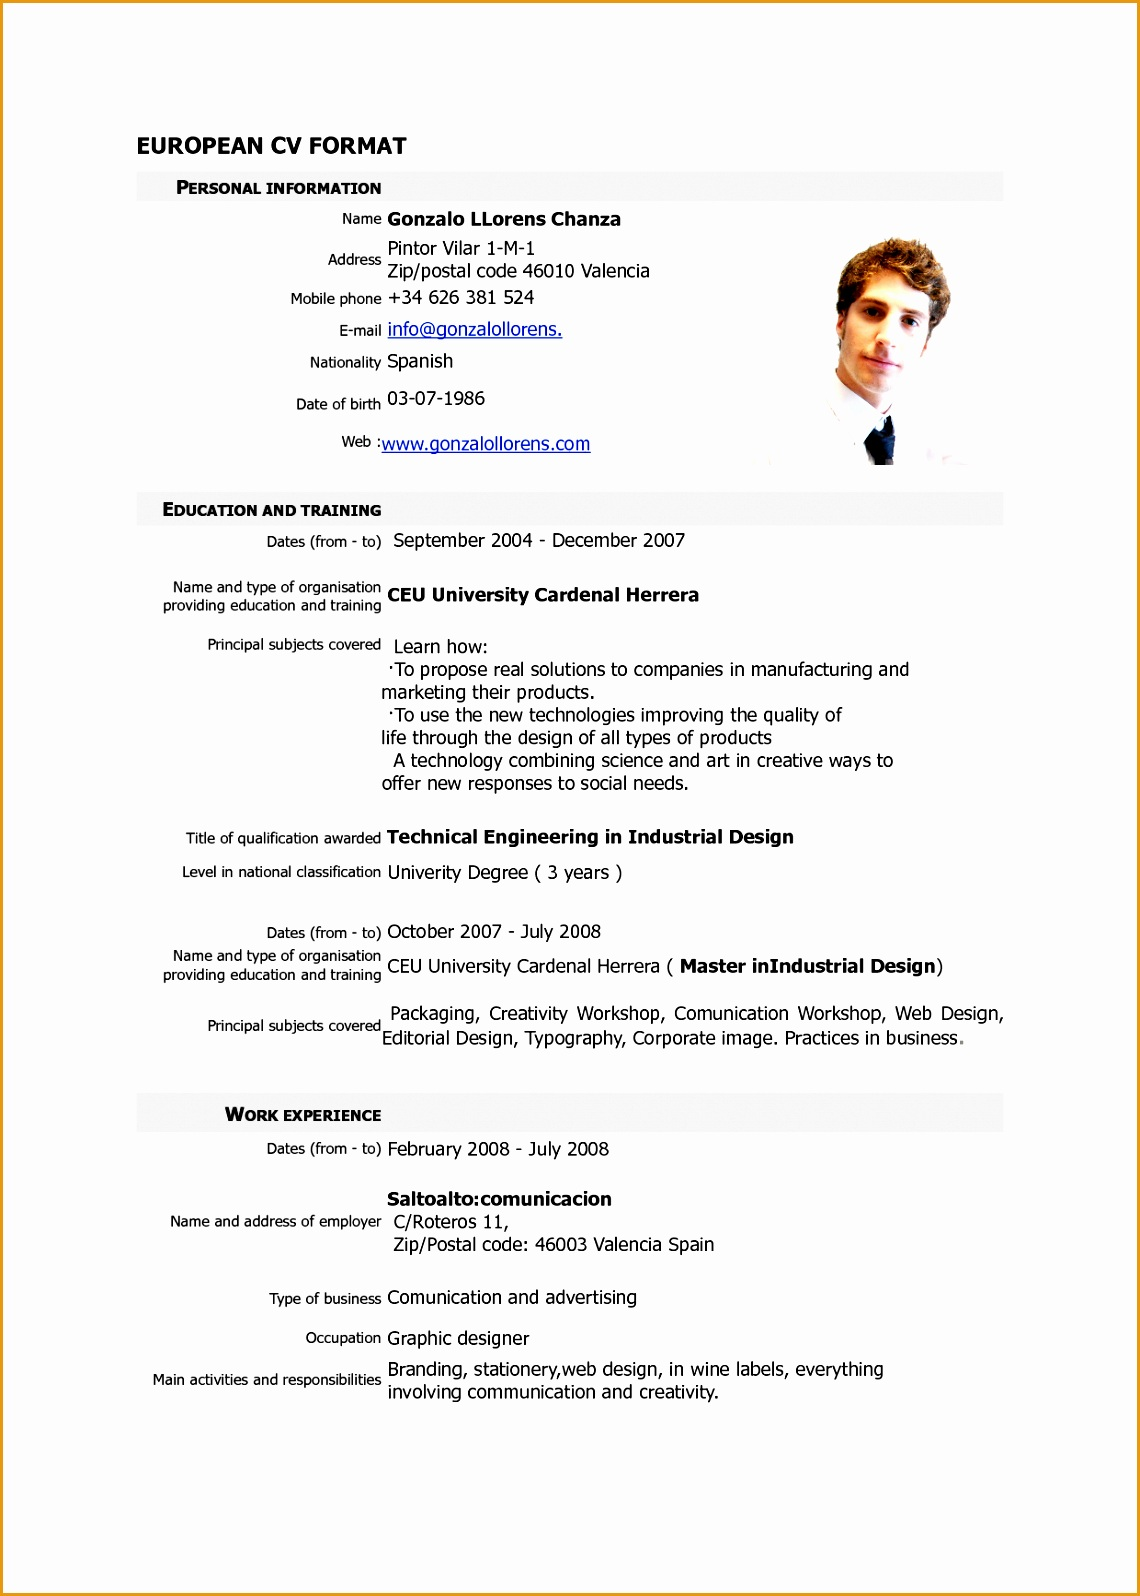 Resume Format Pdf Download 5 Pdf Resume Format Sample Free Samples Examples